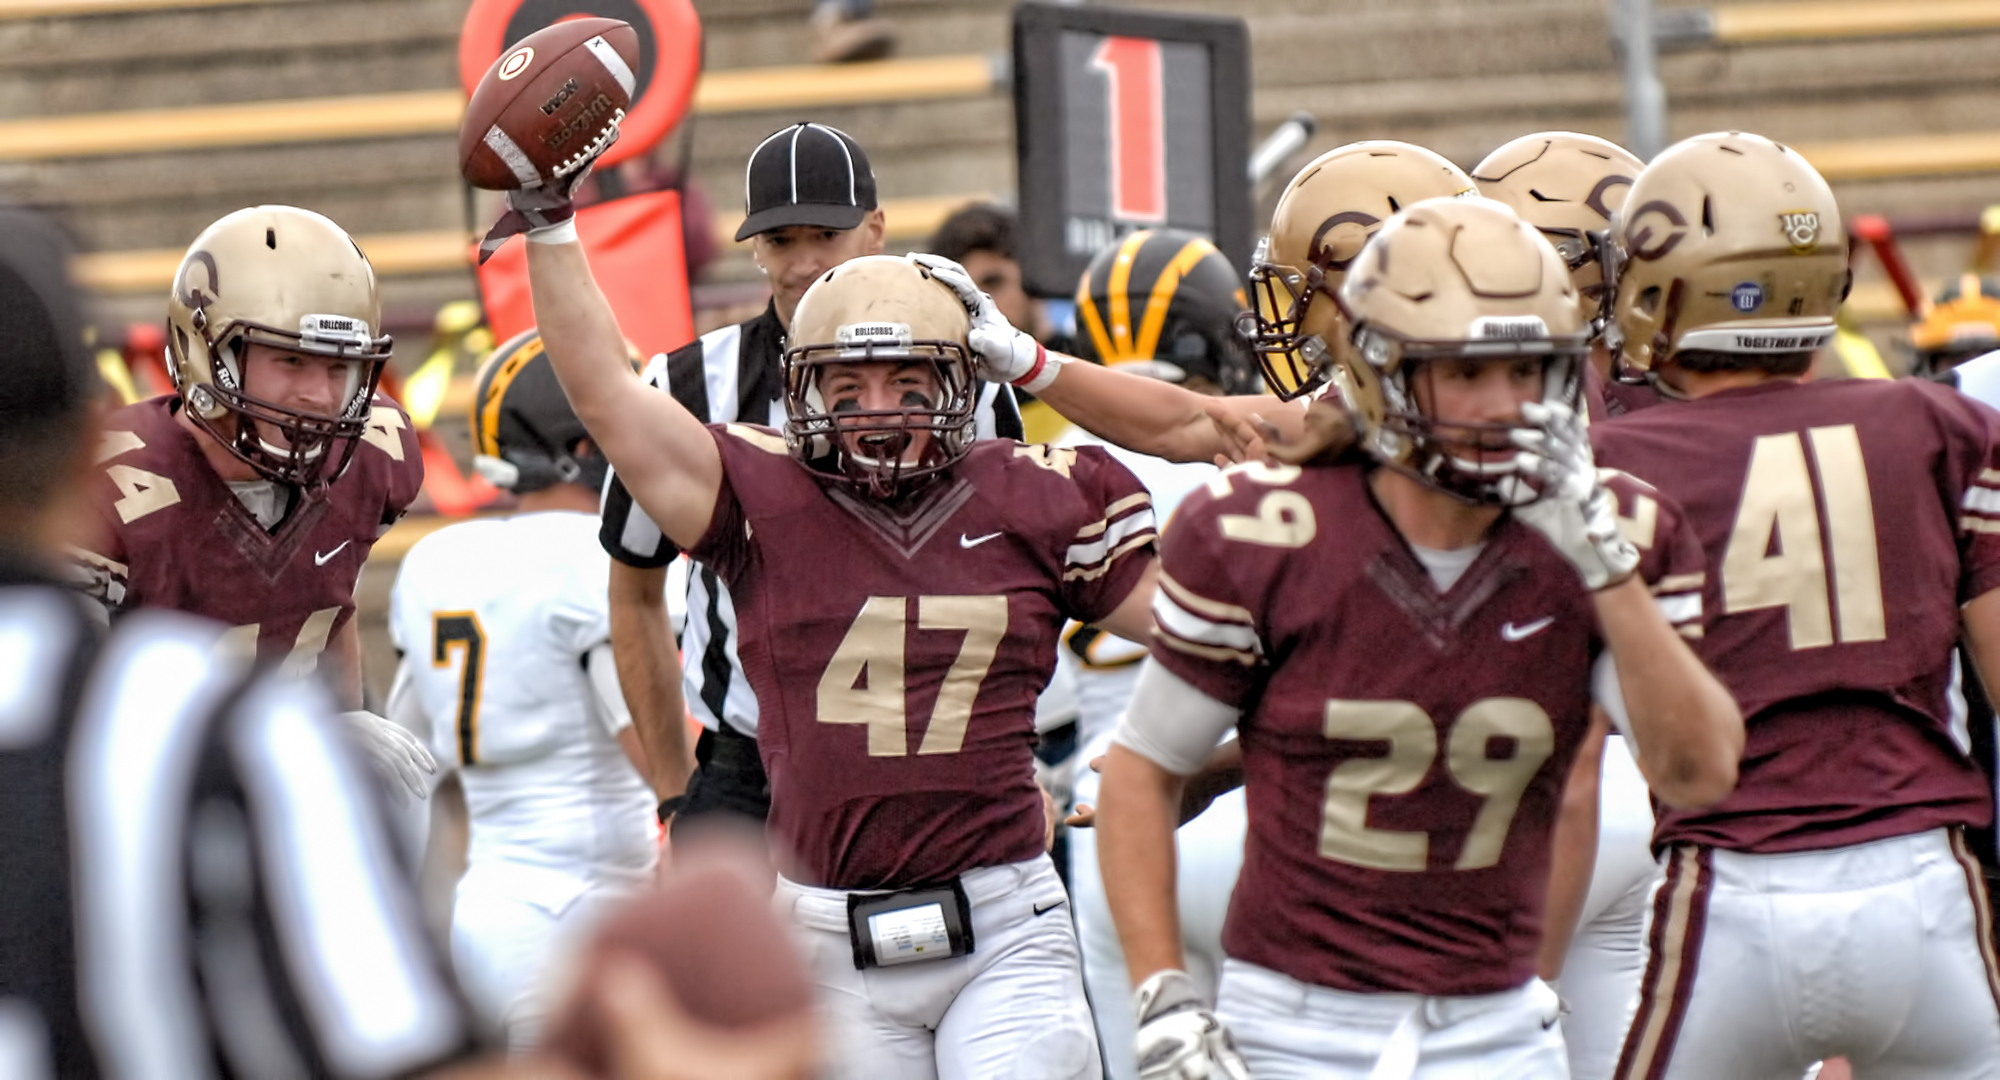 Sophomore Sam Michel is all smiles after recovering a fumble on a kickoff in the Cobbers' 27-17 win over Gustavus.